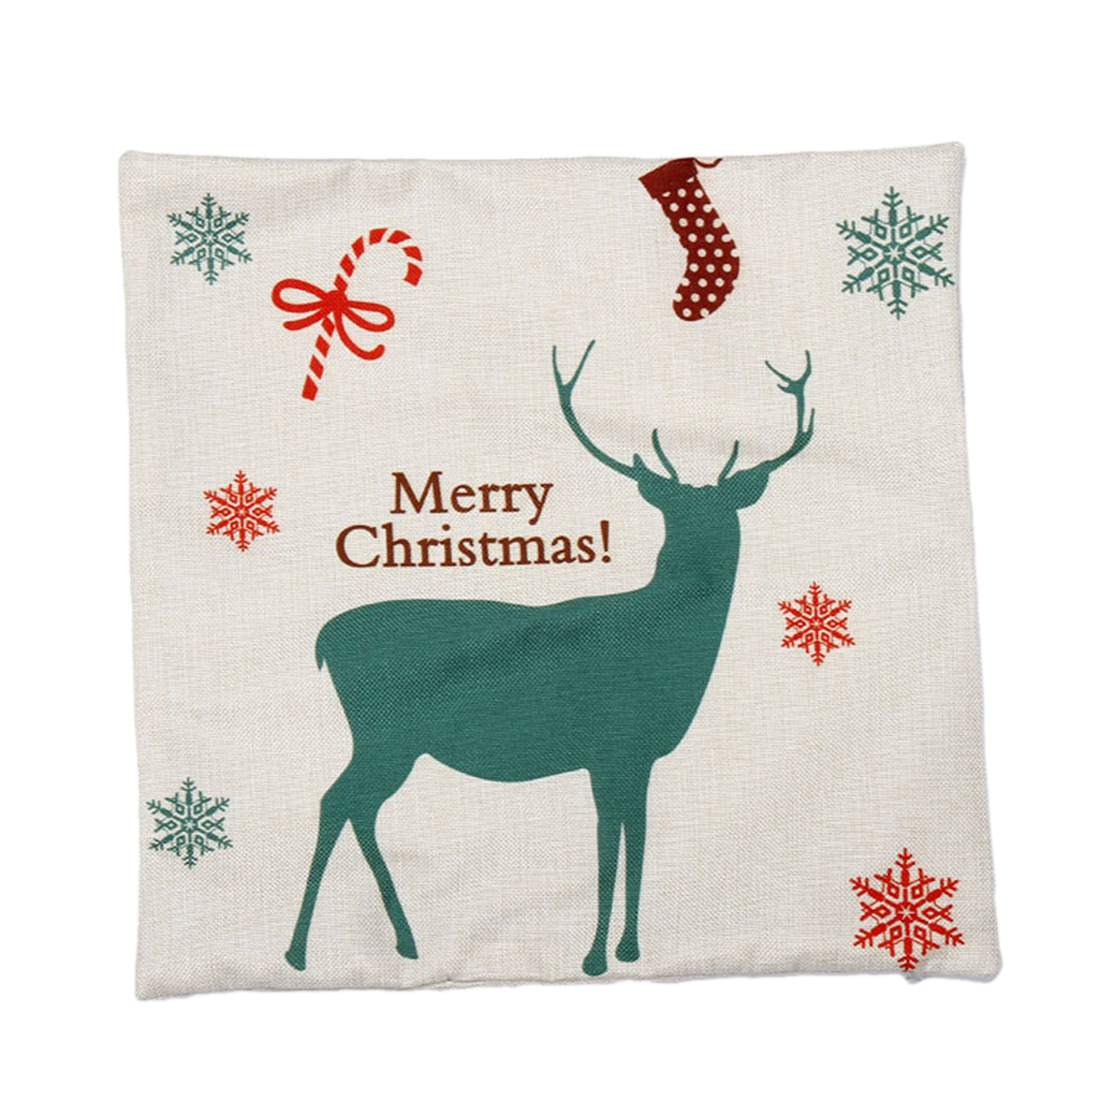 Piccocasa Linen Christmas Deer Printed Cushion Cover Pillow Case Green